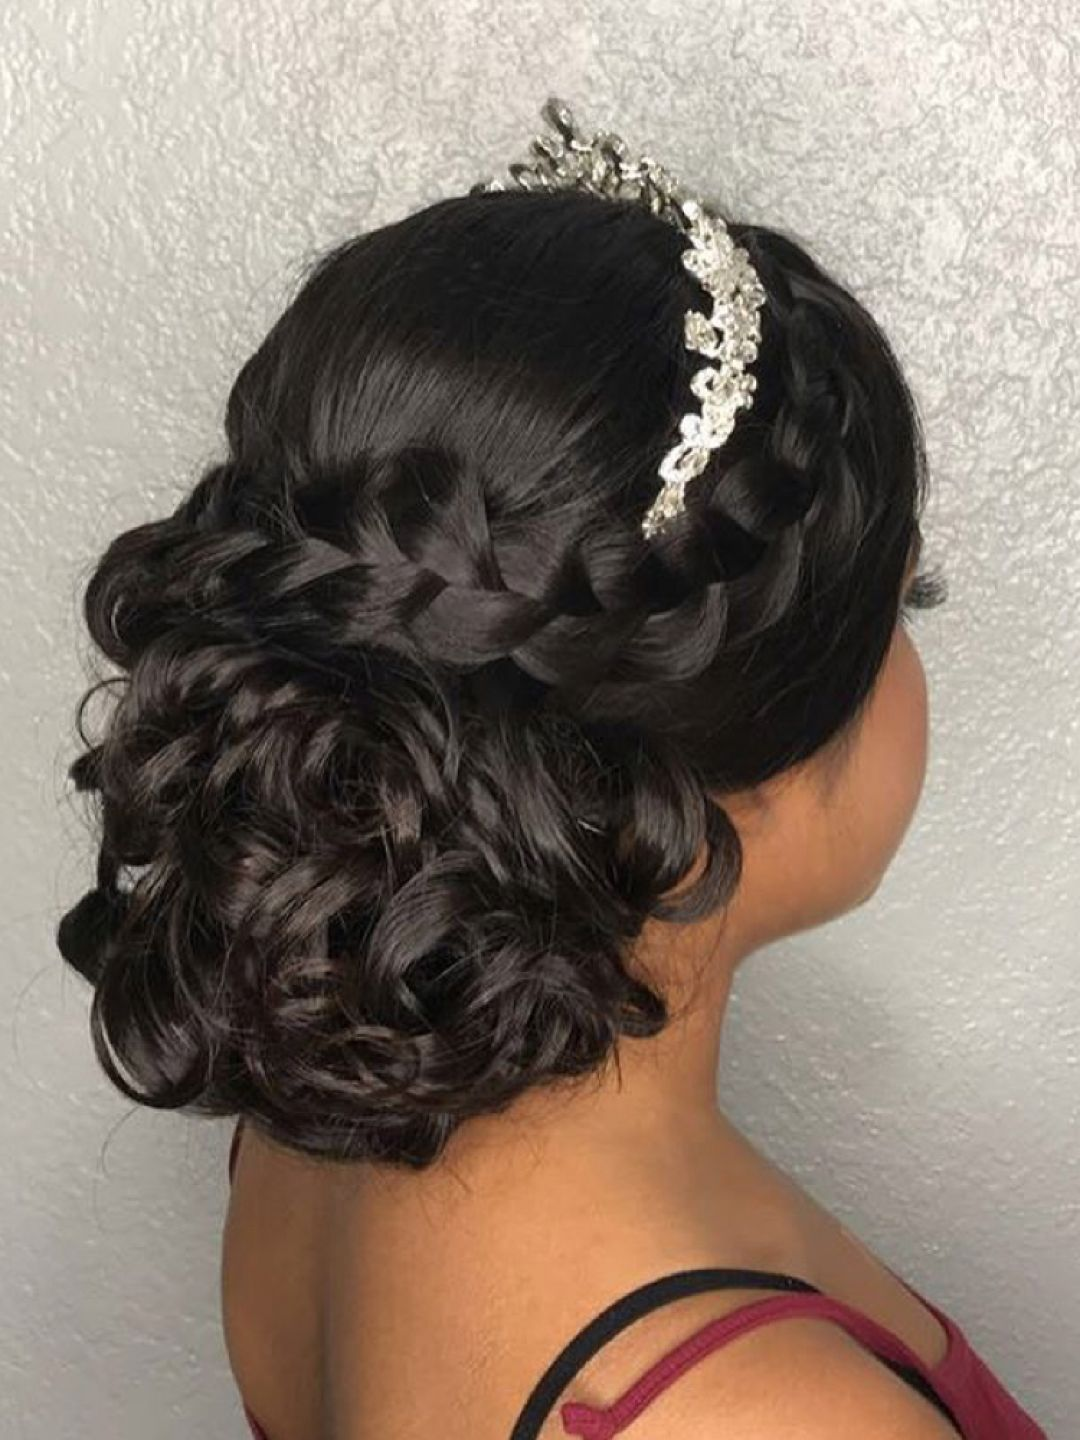 Updo By Robby Garza On Frizo Quince Hairstyles Sweet 15 Hairstyles Hair Styles